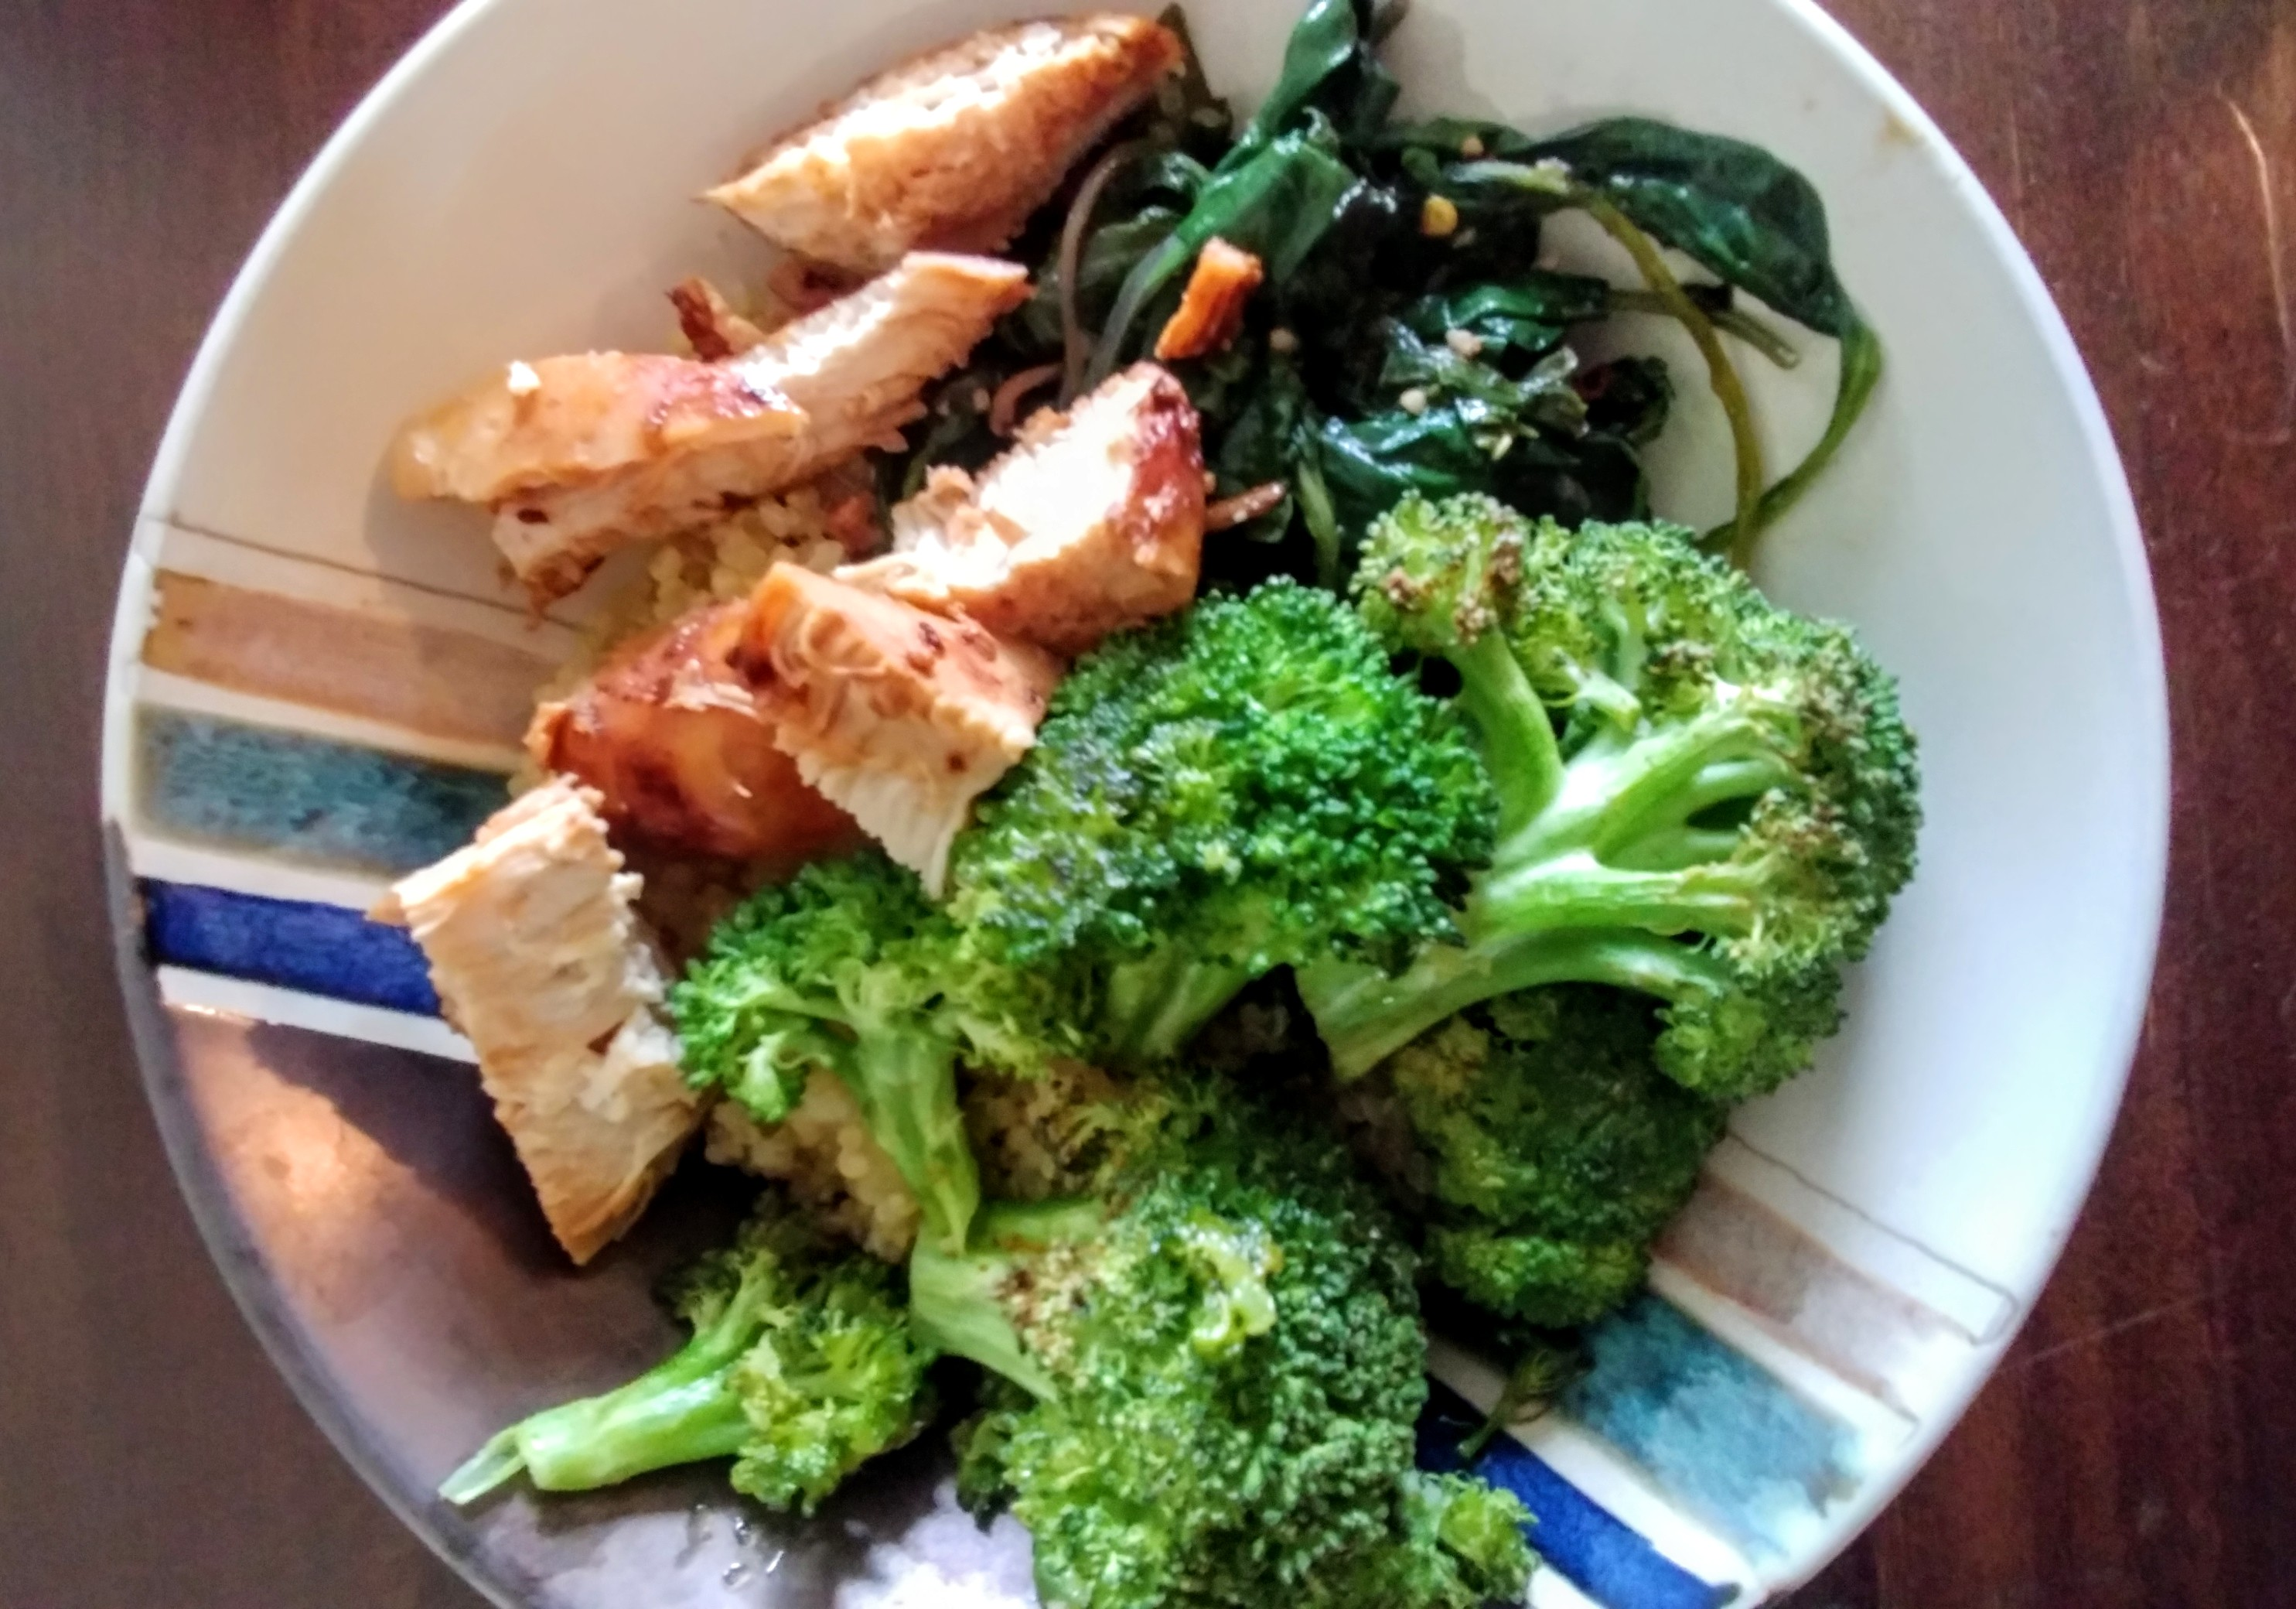 Teriyaki Chicken with roasted broccoli, sautéed garlicky spinach and quinoa bowl